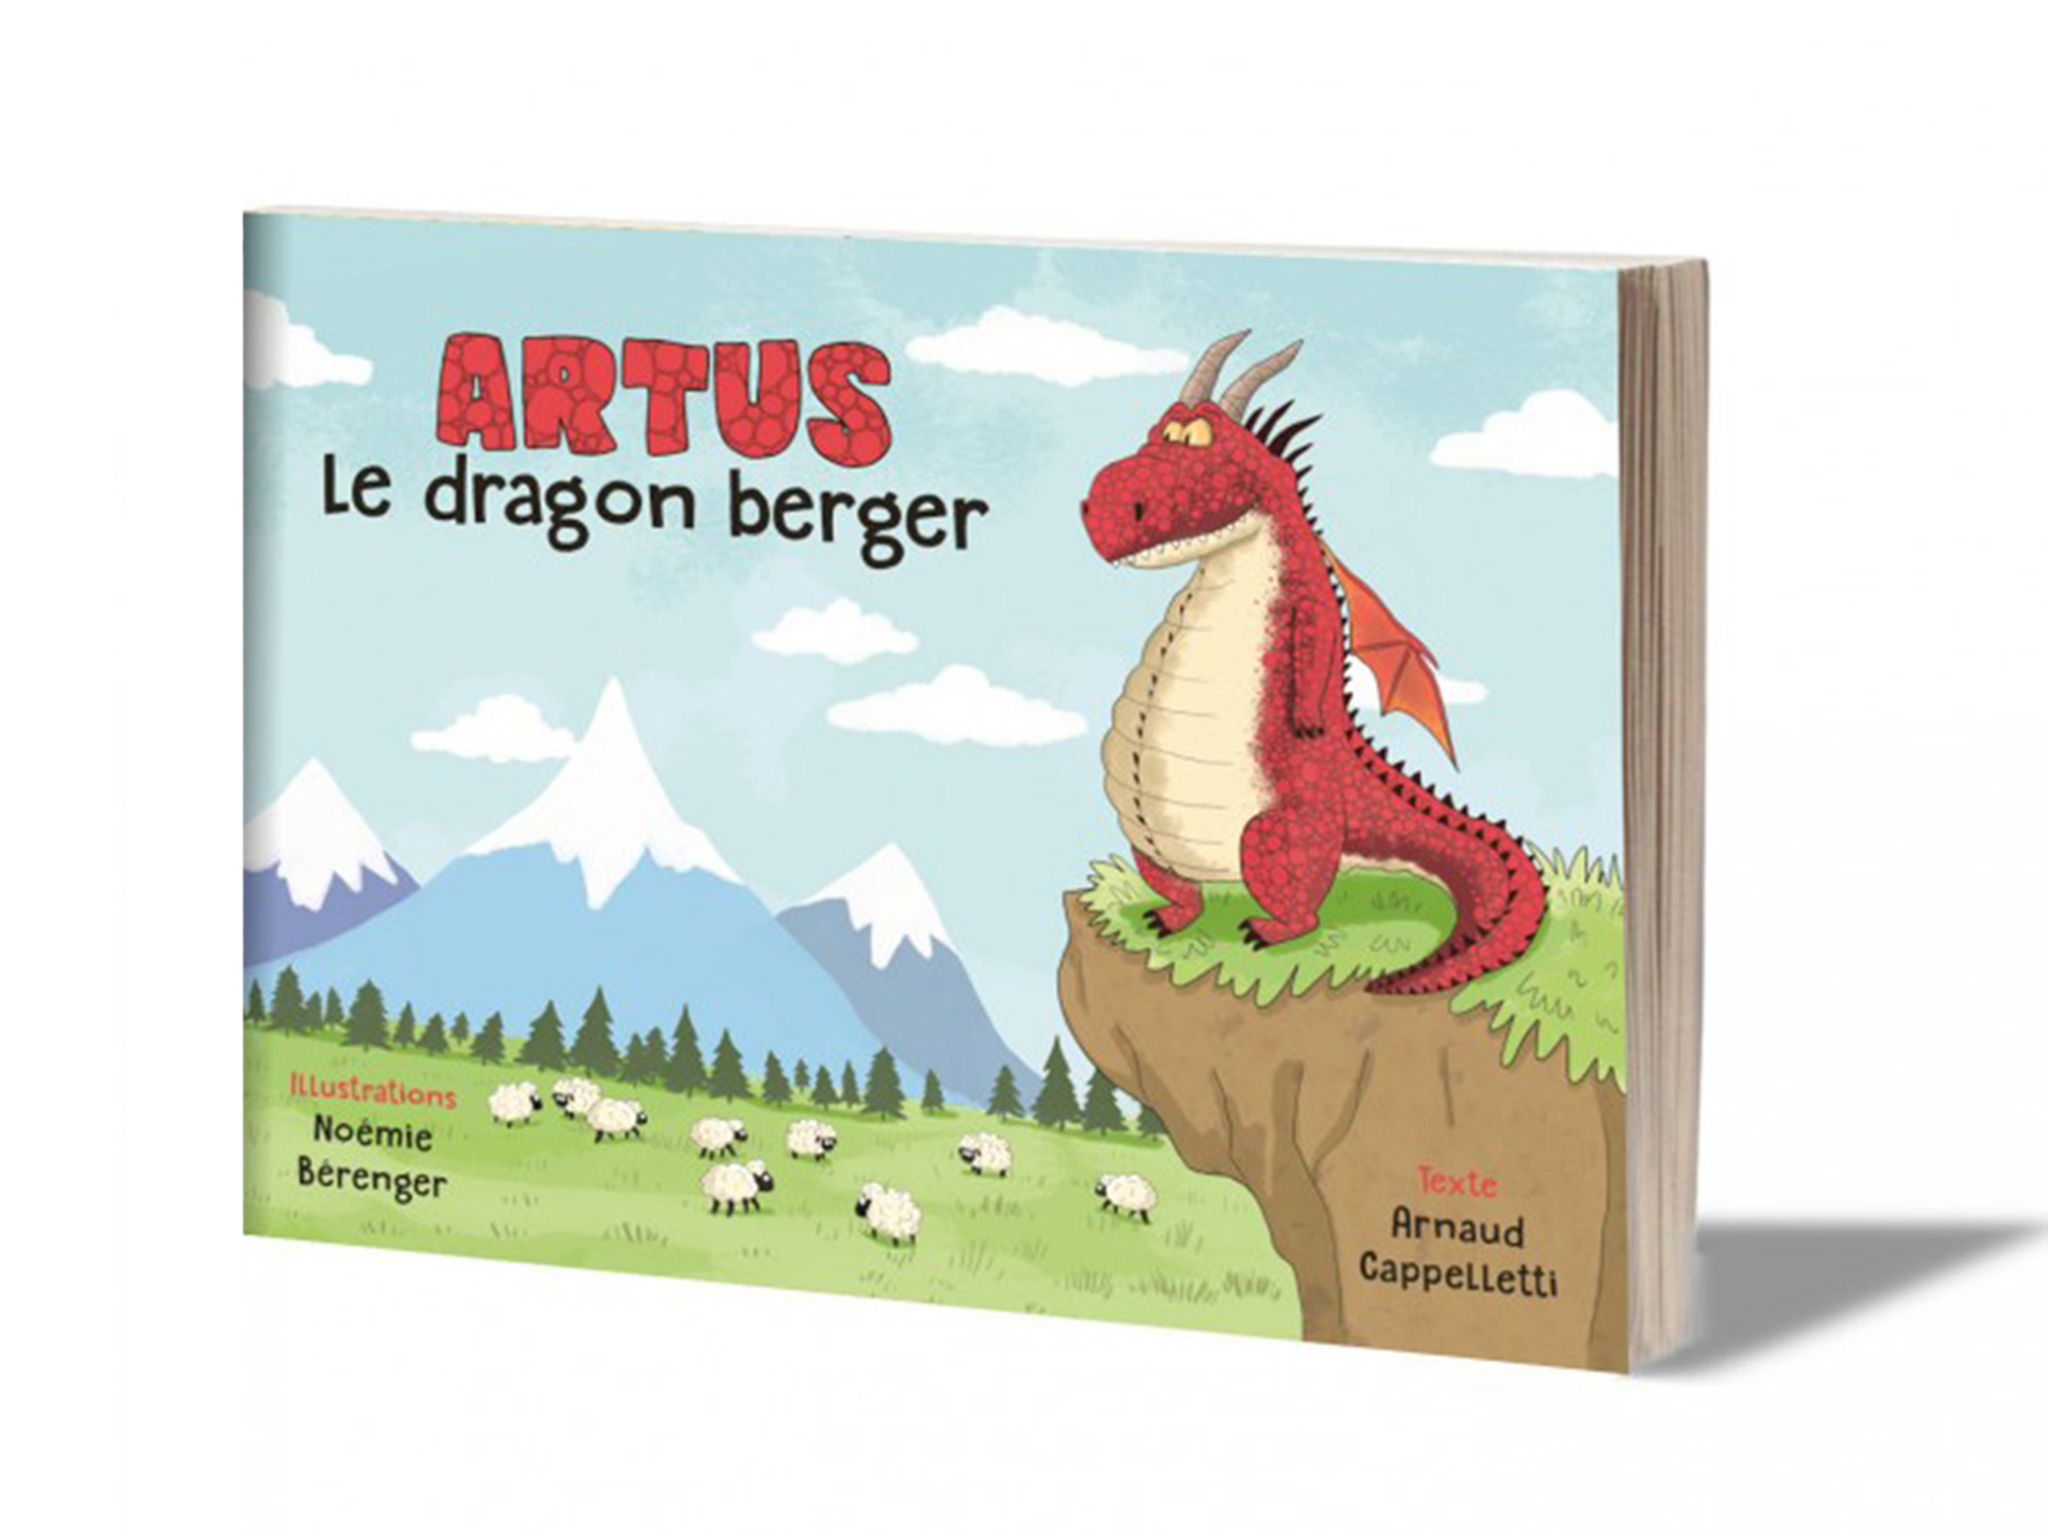 Artus le dragon berger